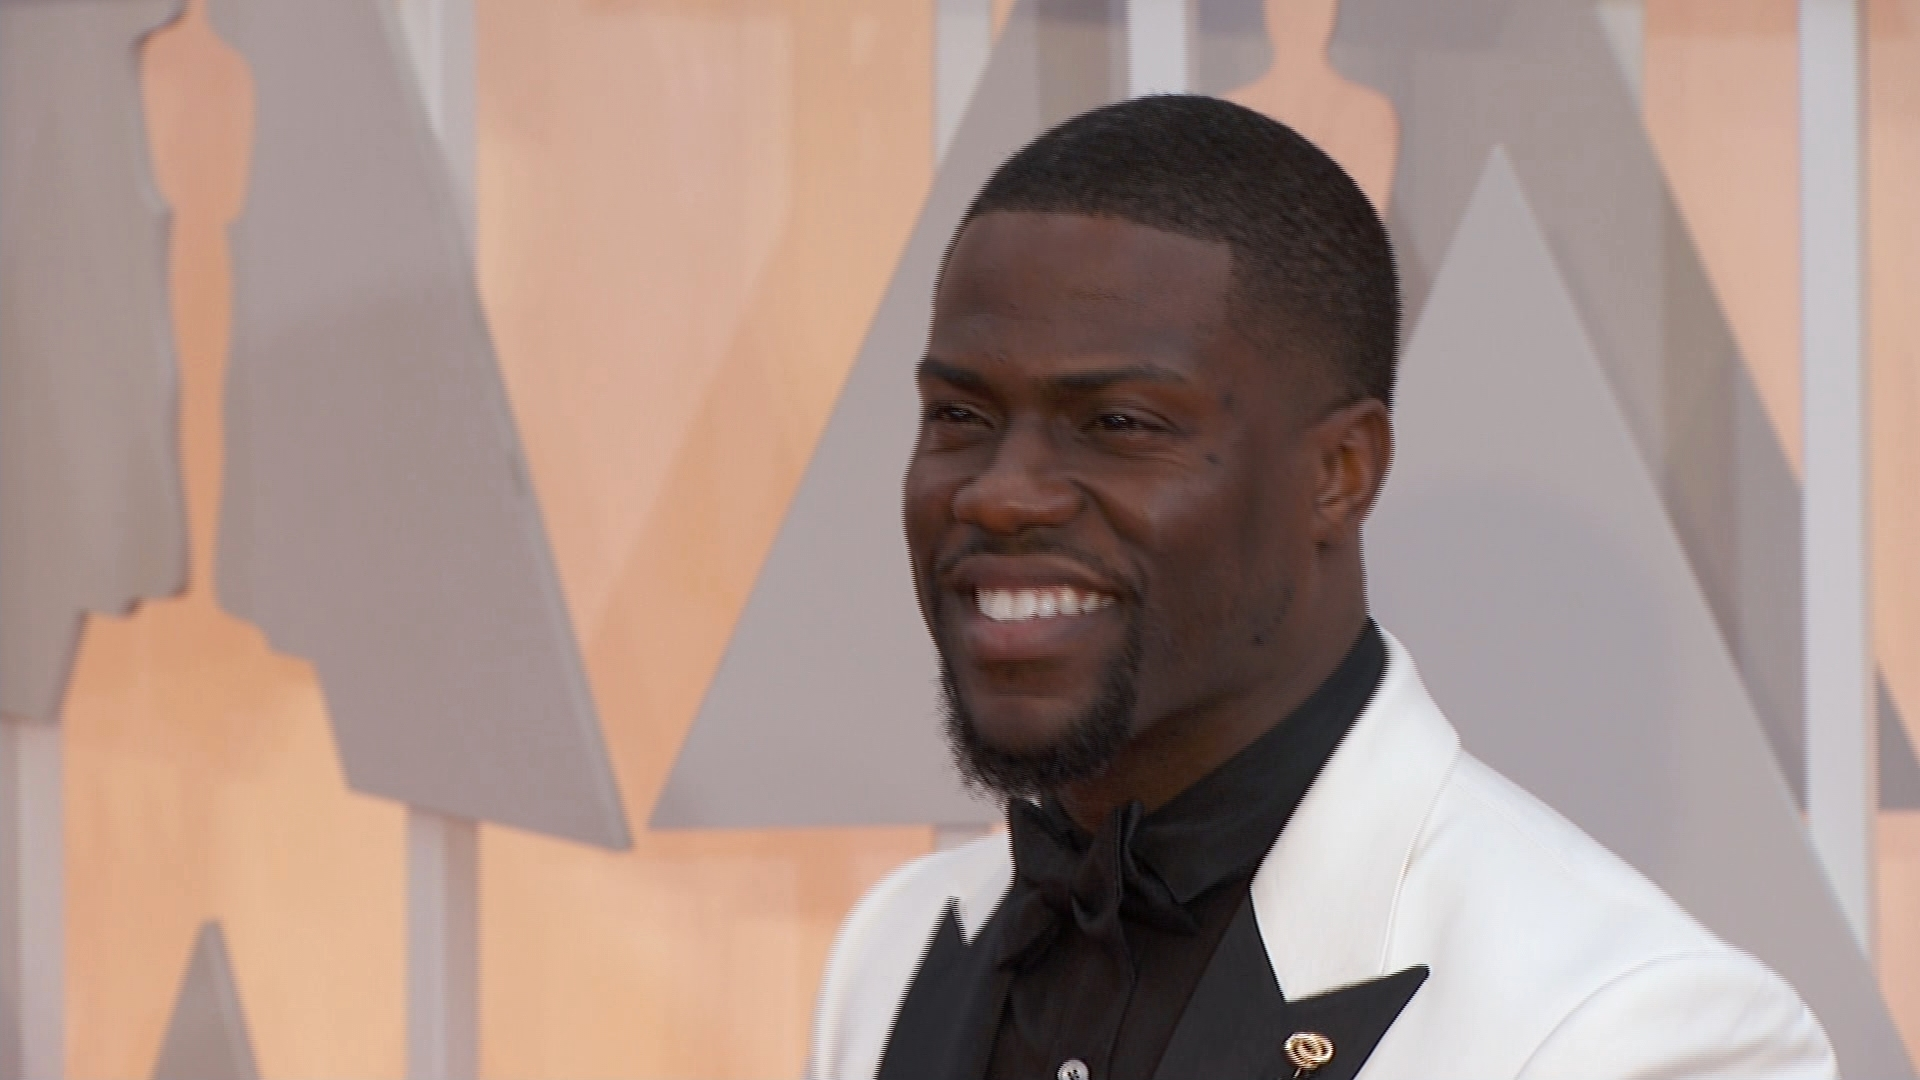 Kevin Hart Gets Mistaken for Chris Rock